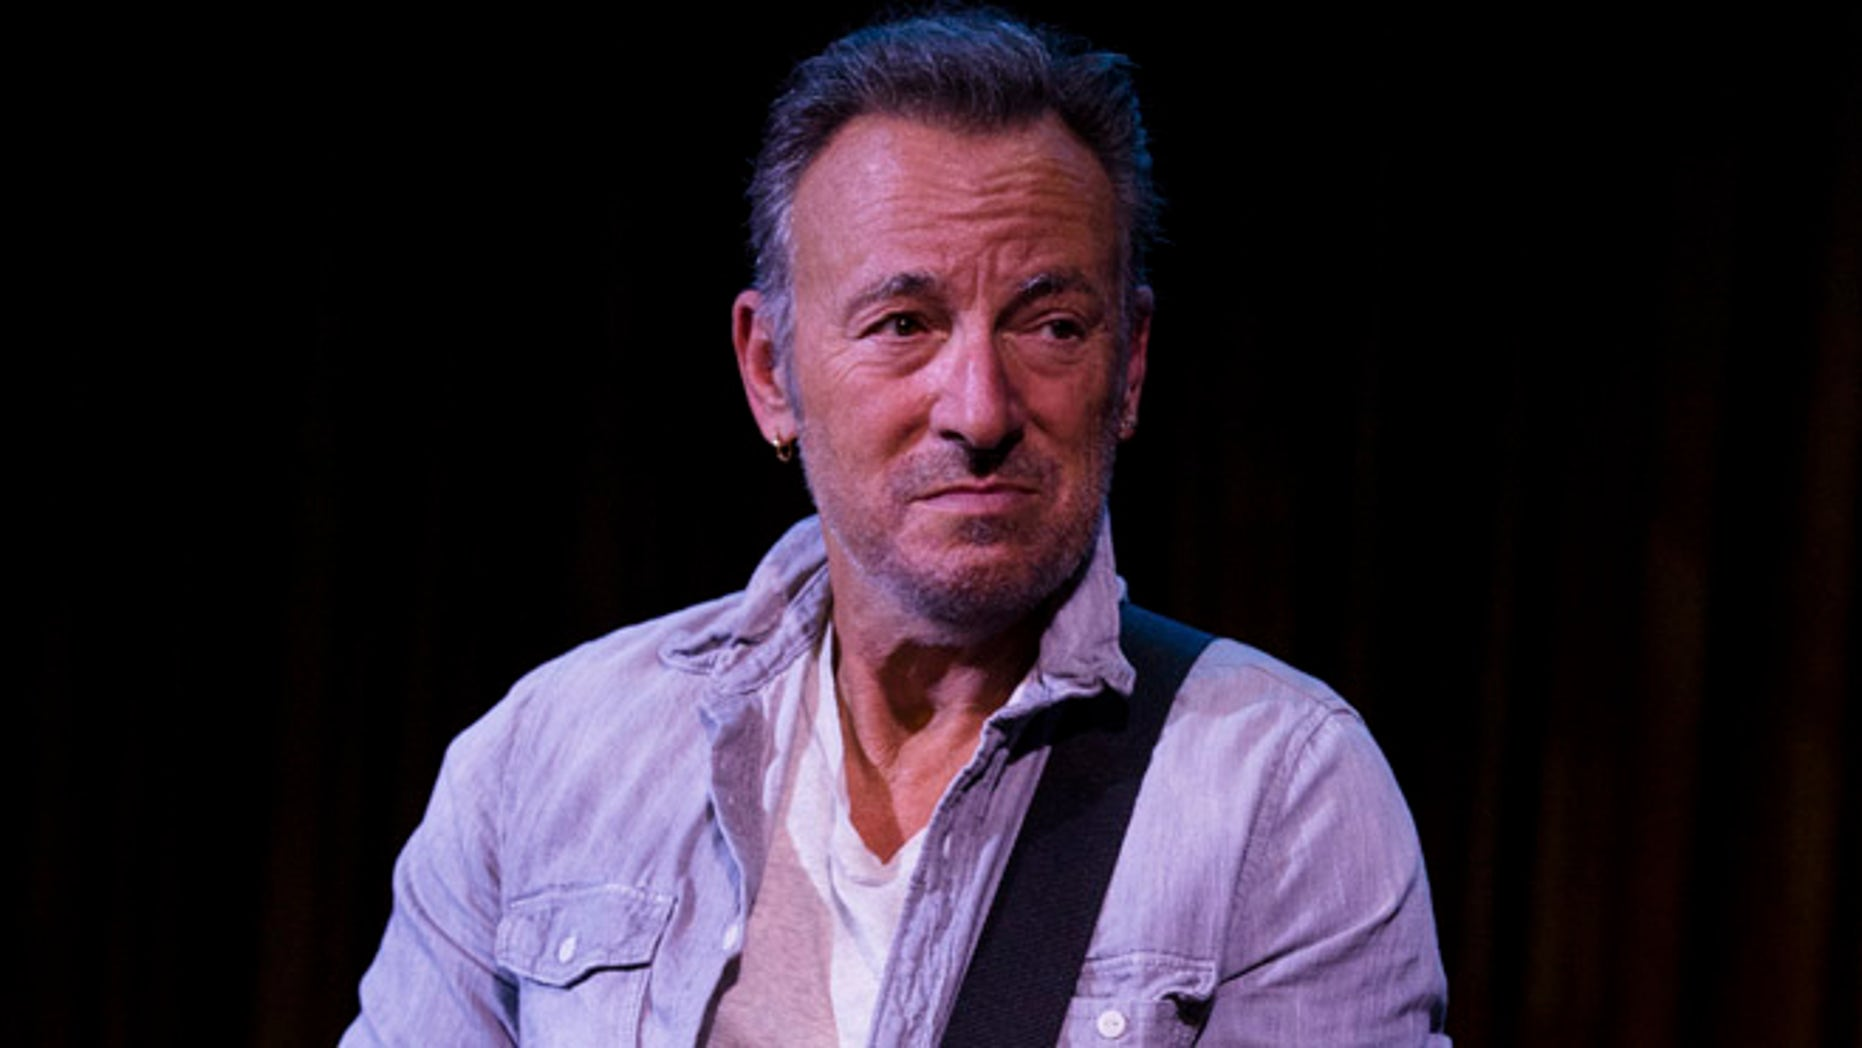 Bruce Springsteen took part in a two-hour jam session during a surprise appearance at a film festival in New Jersey